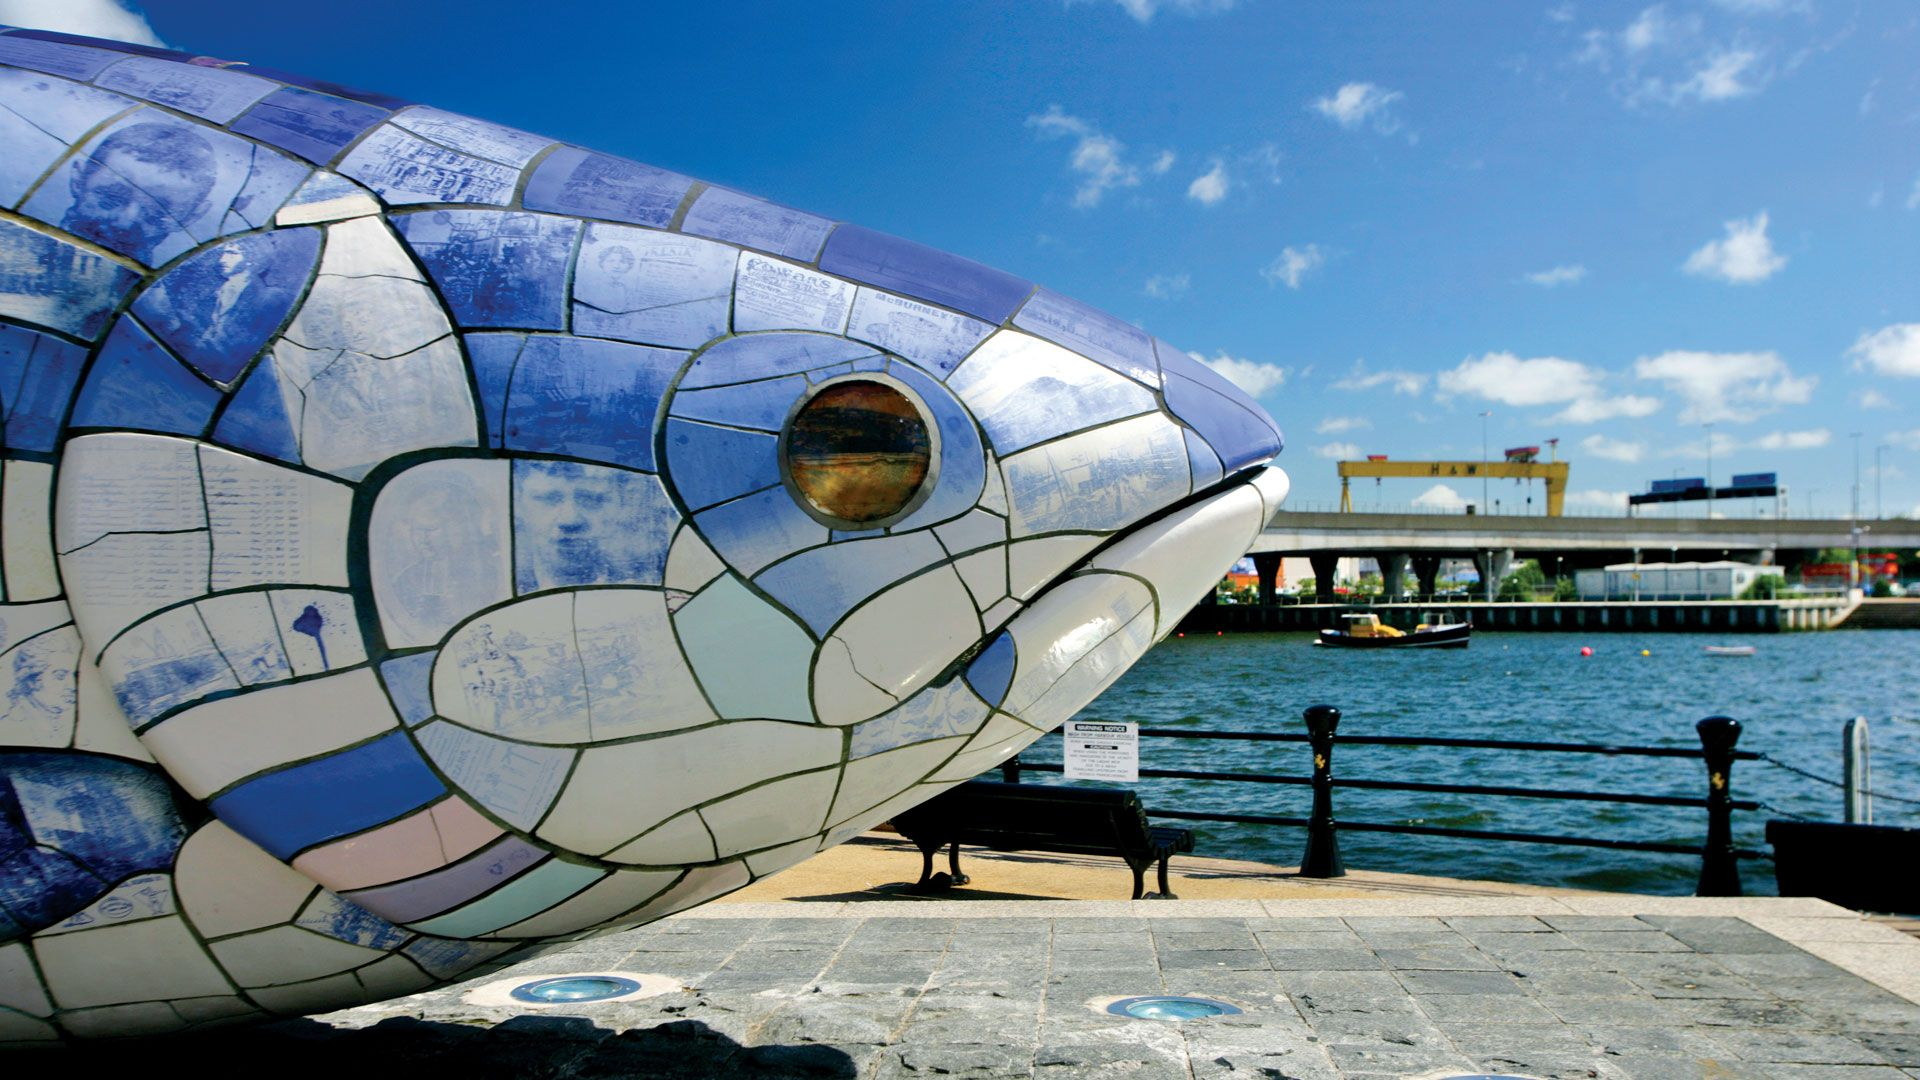 Big Fish & Chip Trip - Walking Tour plus stops for beer and an Award winning Fish & Chip lunch.